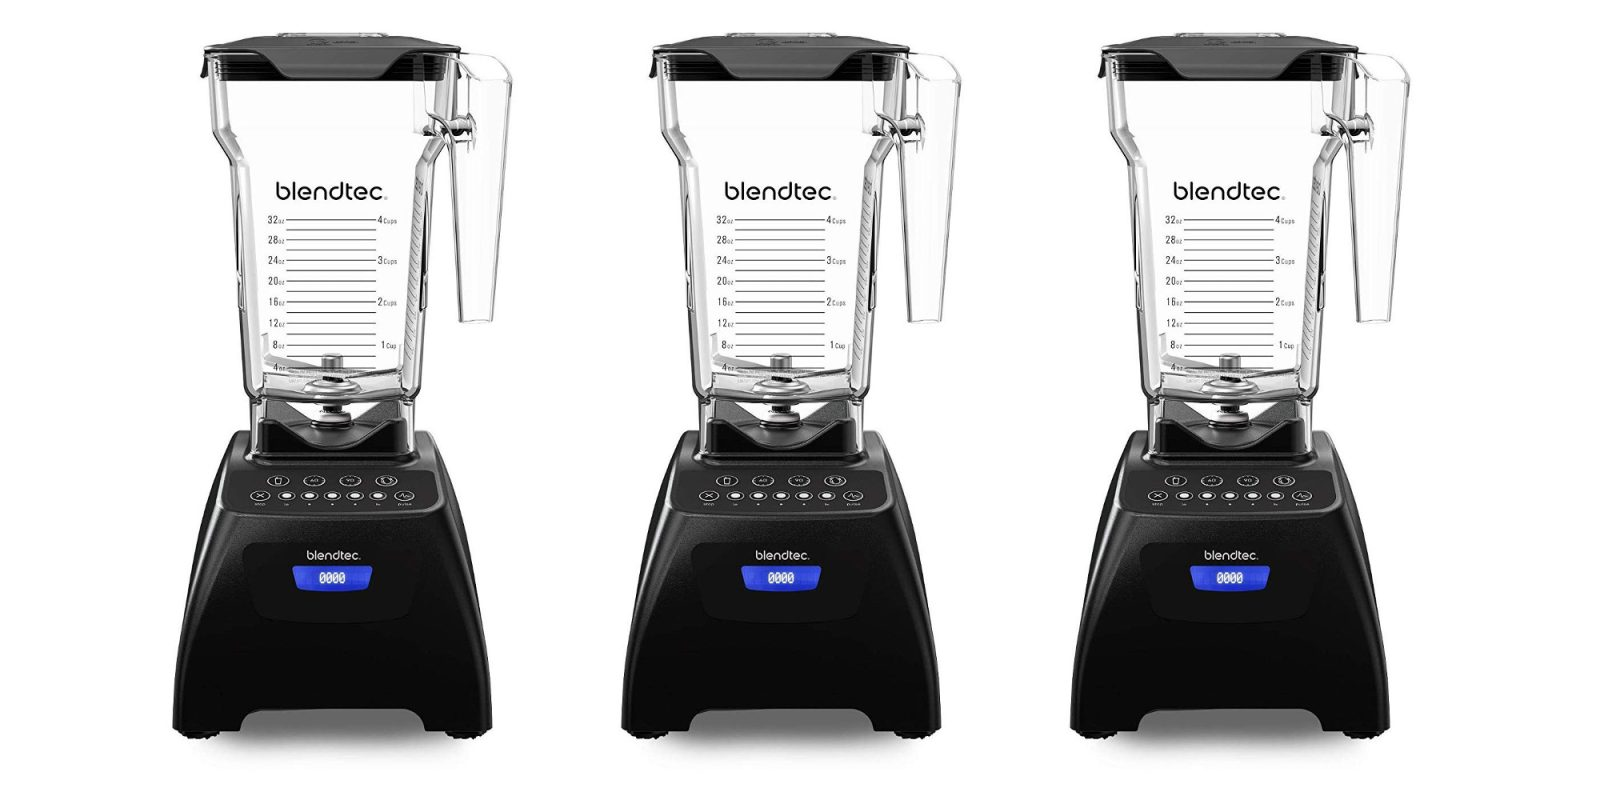 Upgrade to the Blendtec 575 Blender with an 8 yr. warranty at $100+ off